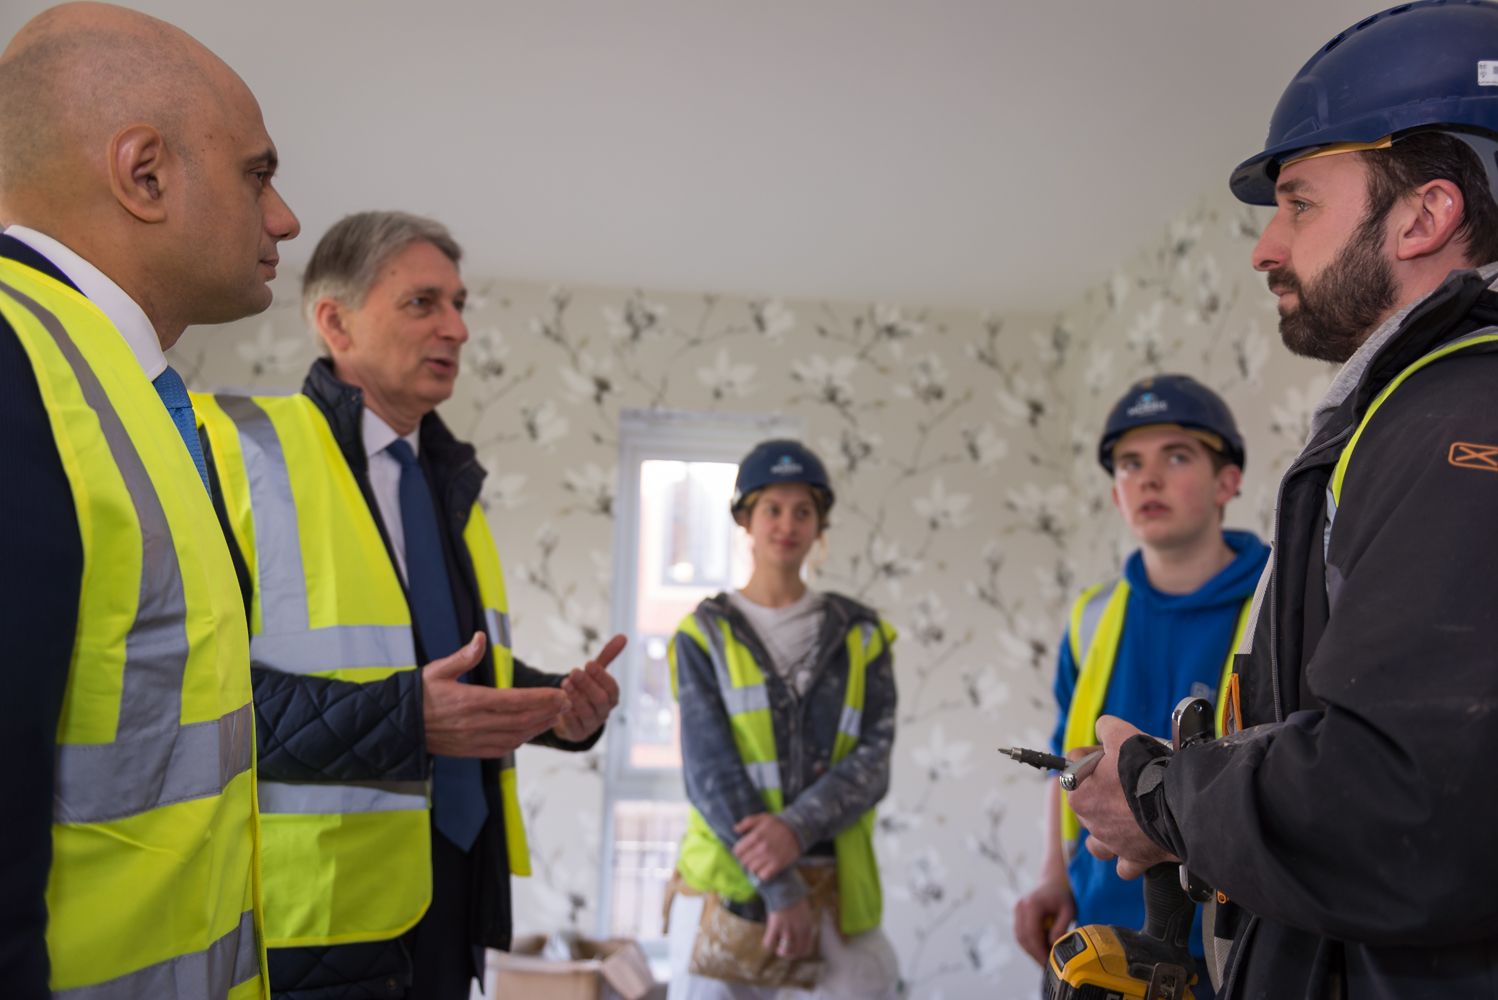 Sajid Javid, Phillip Hammond, Three Apprentices